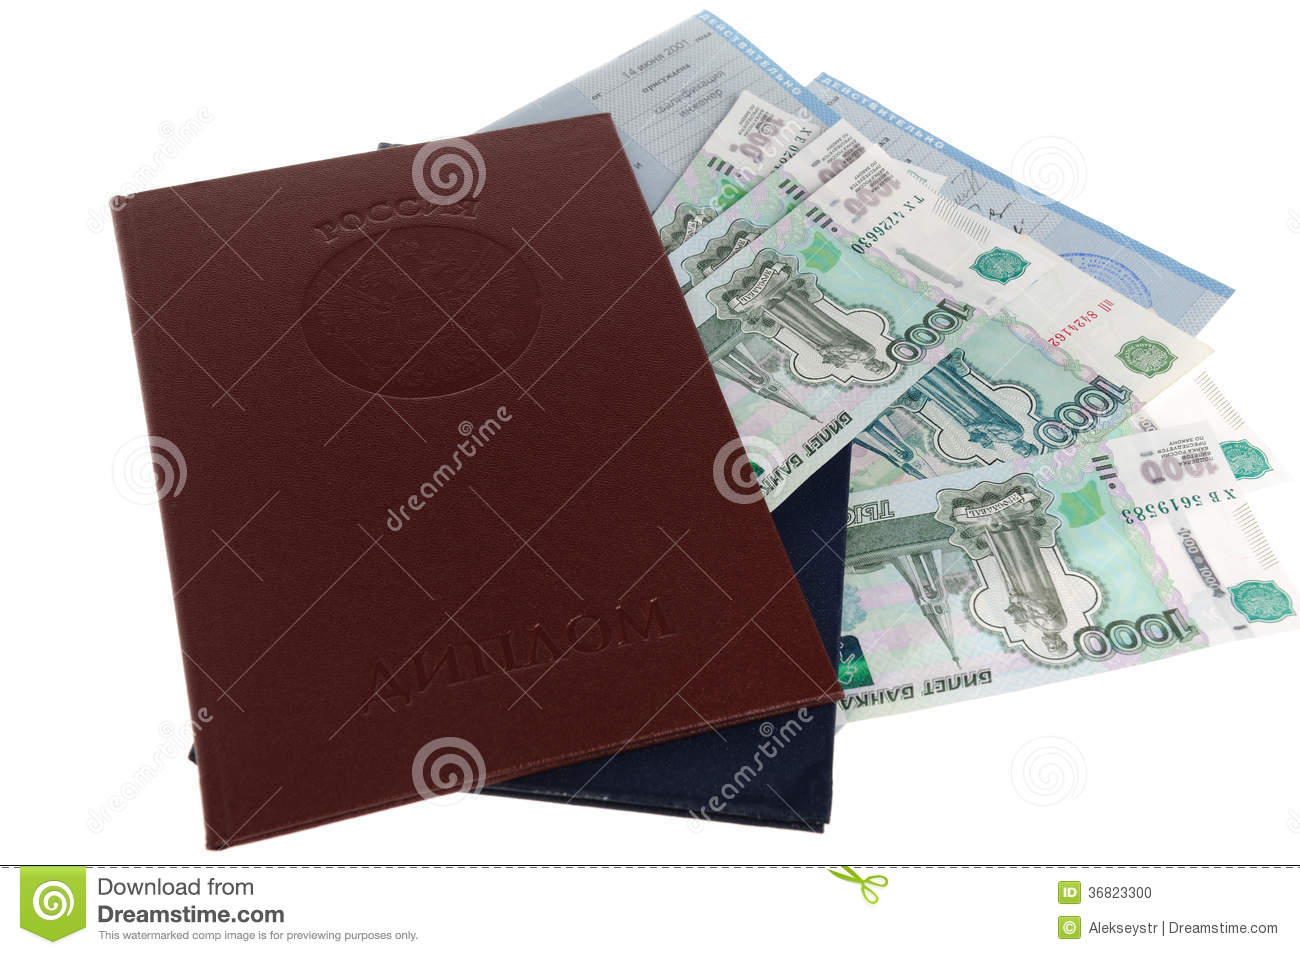 Diplomas of higher education with applications and money